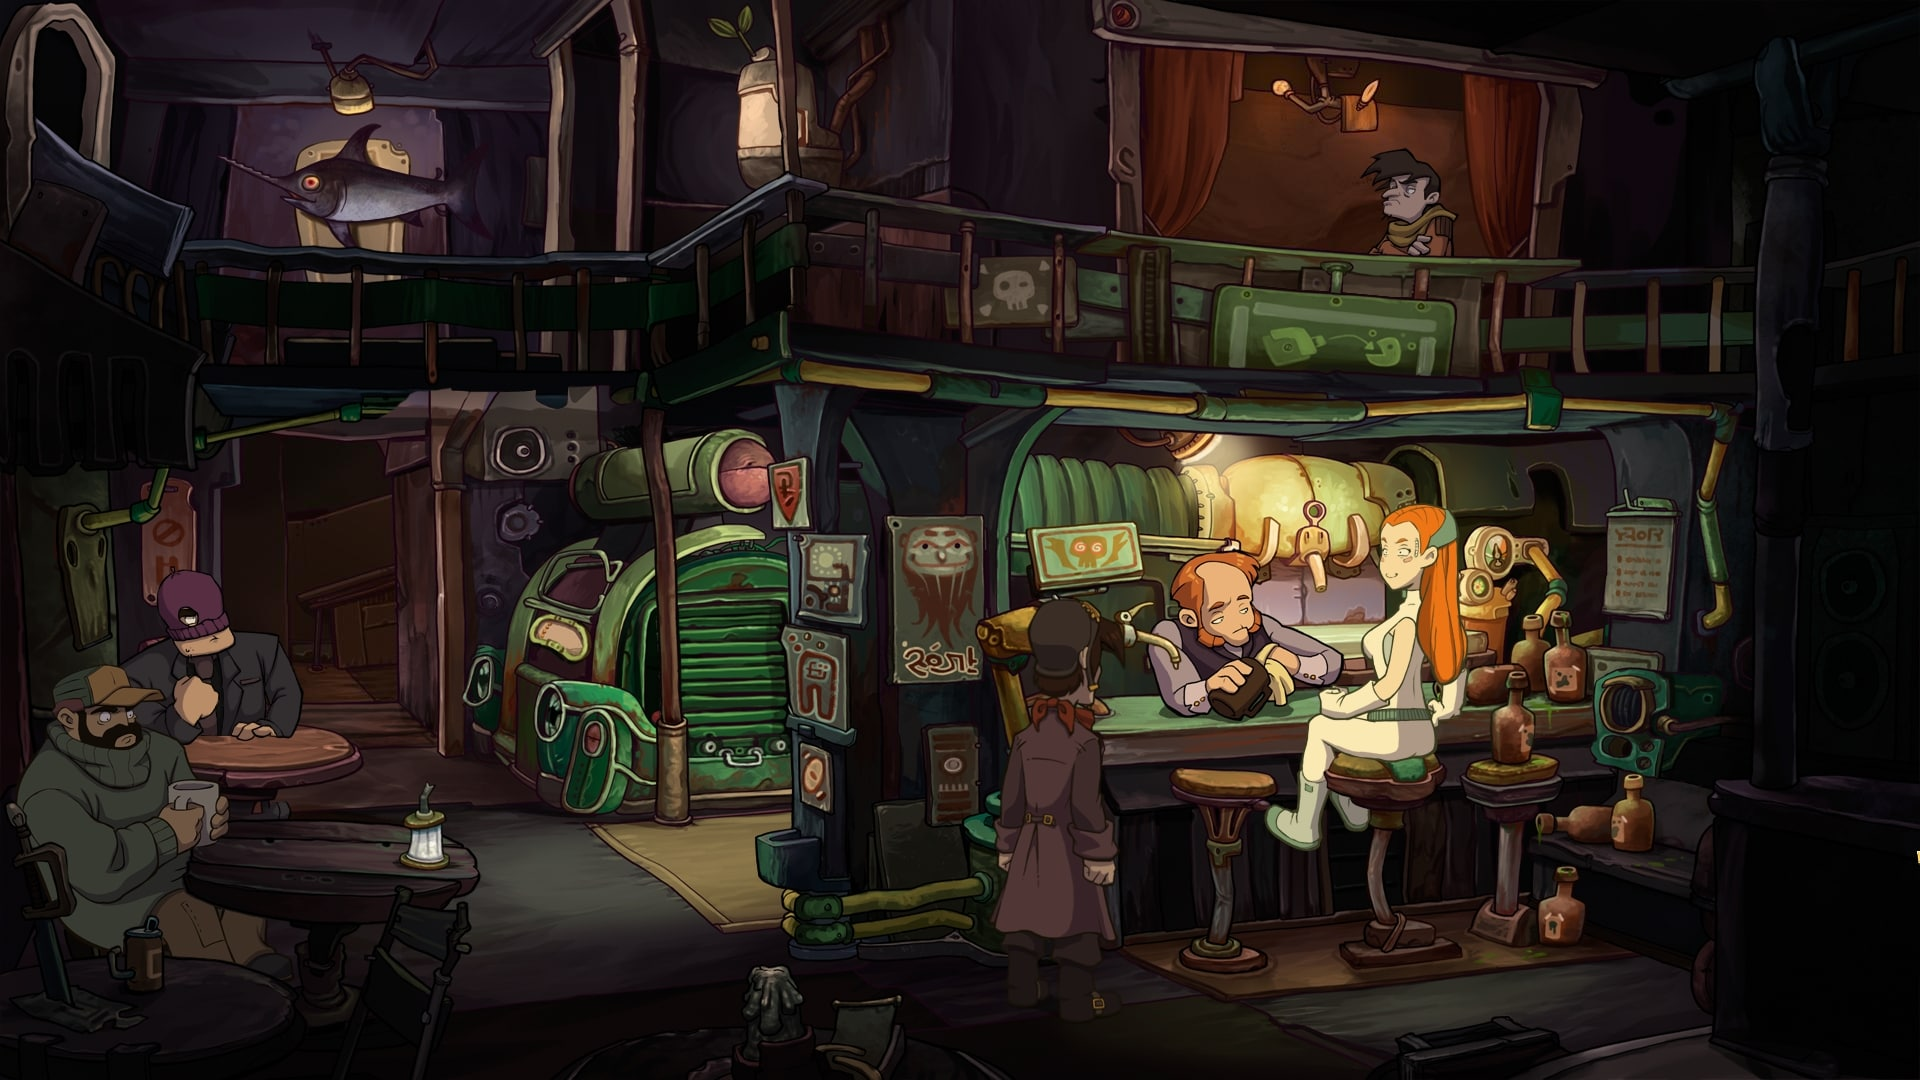 Deponia: The Complete Journey Steam Key GLOBAL - 2